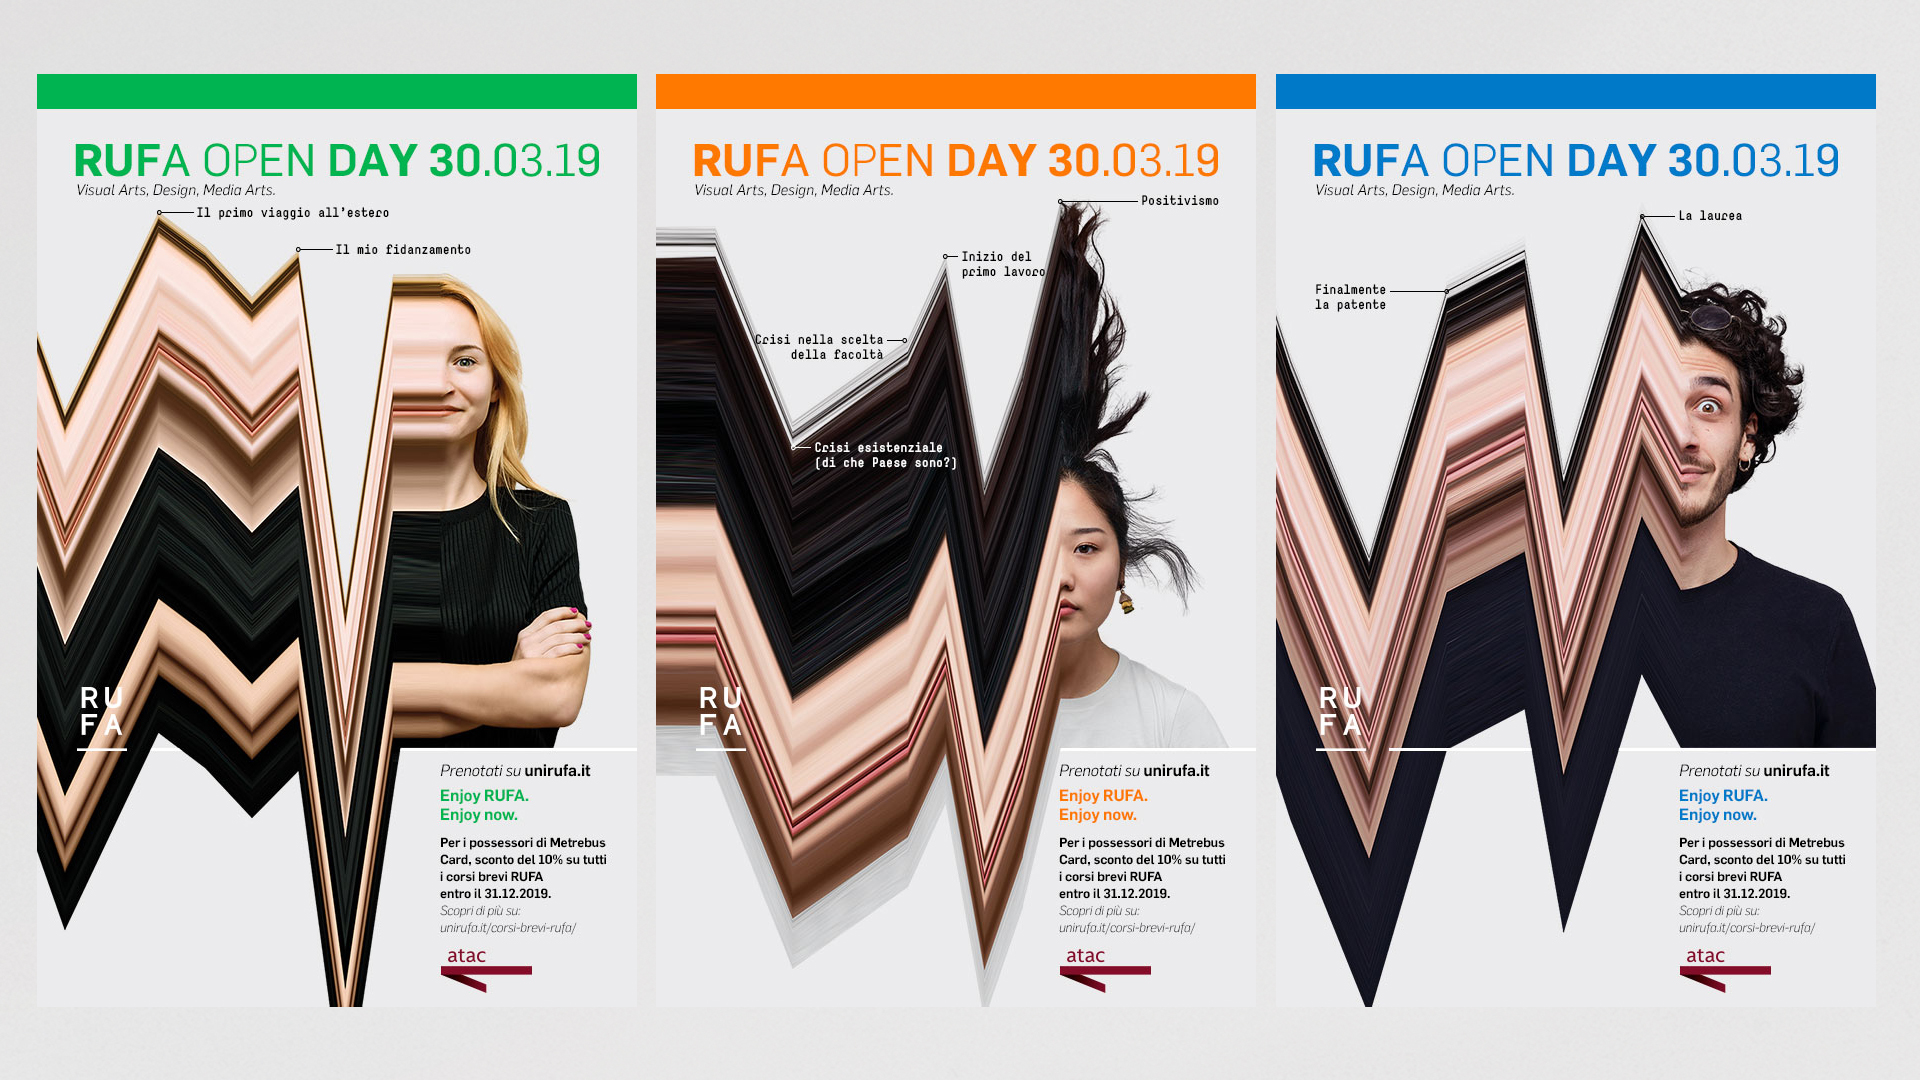 RUFA OPEN DAY